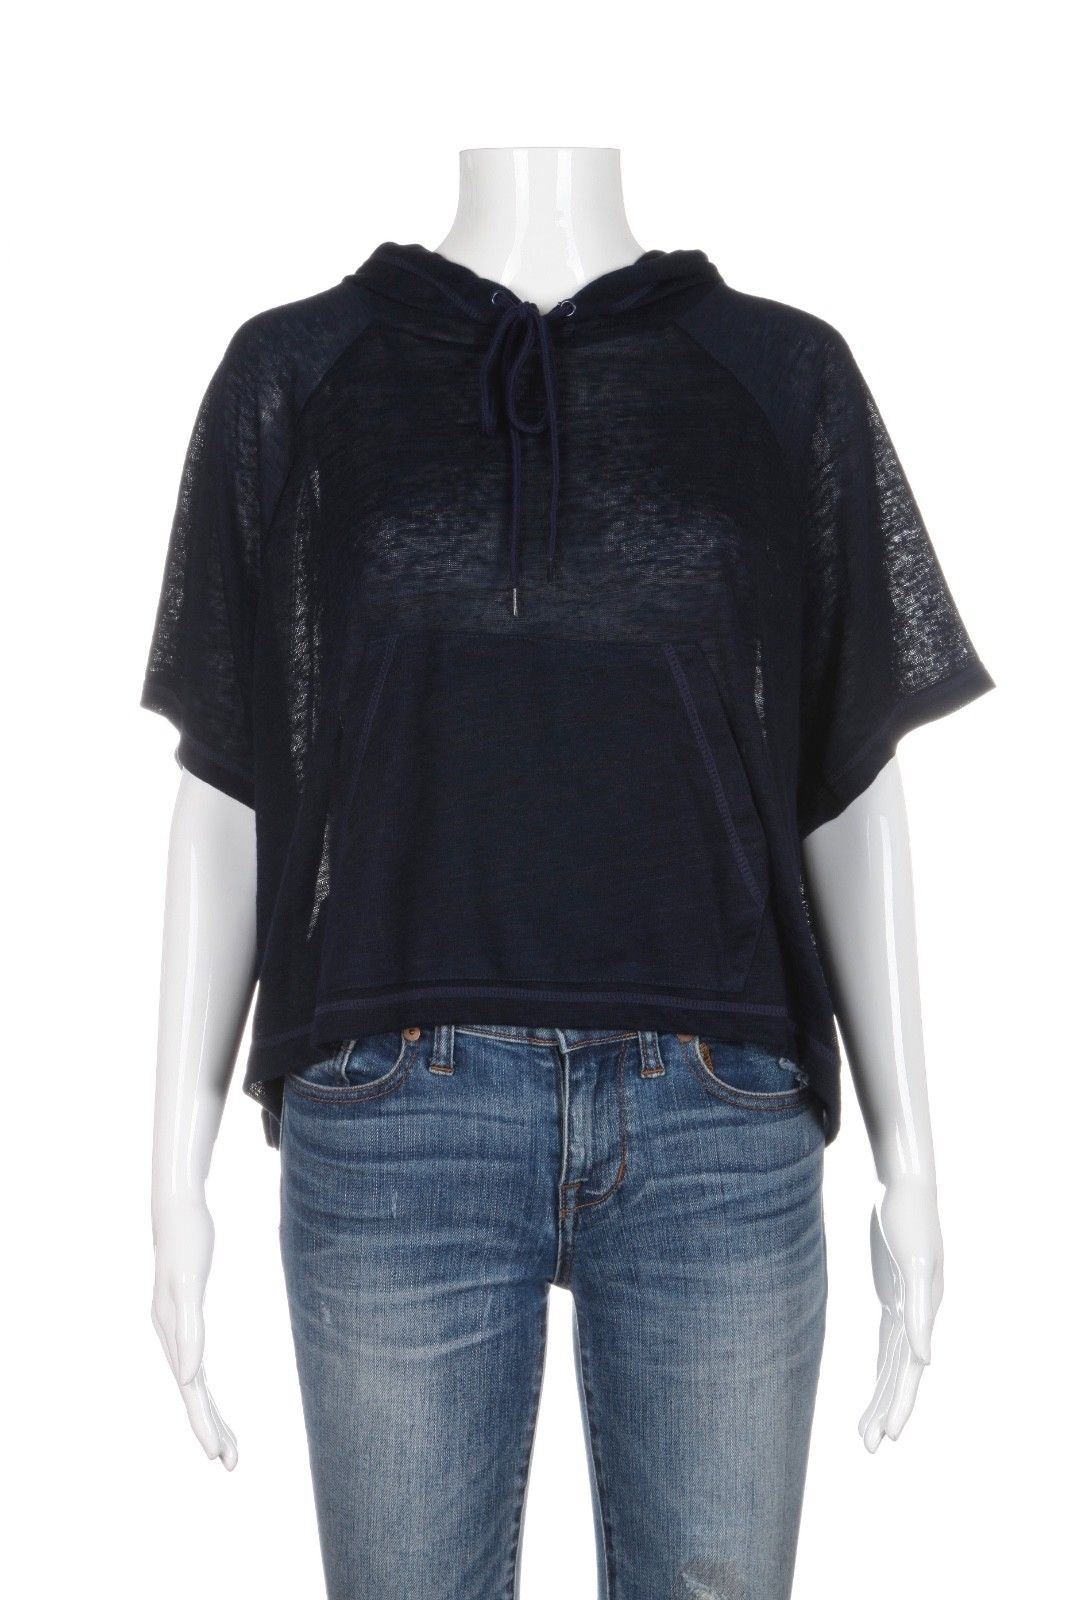 DYI Define Your Inspiration Navy Blue Sheer Hooded Tee Size M (New)